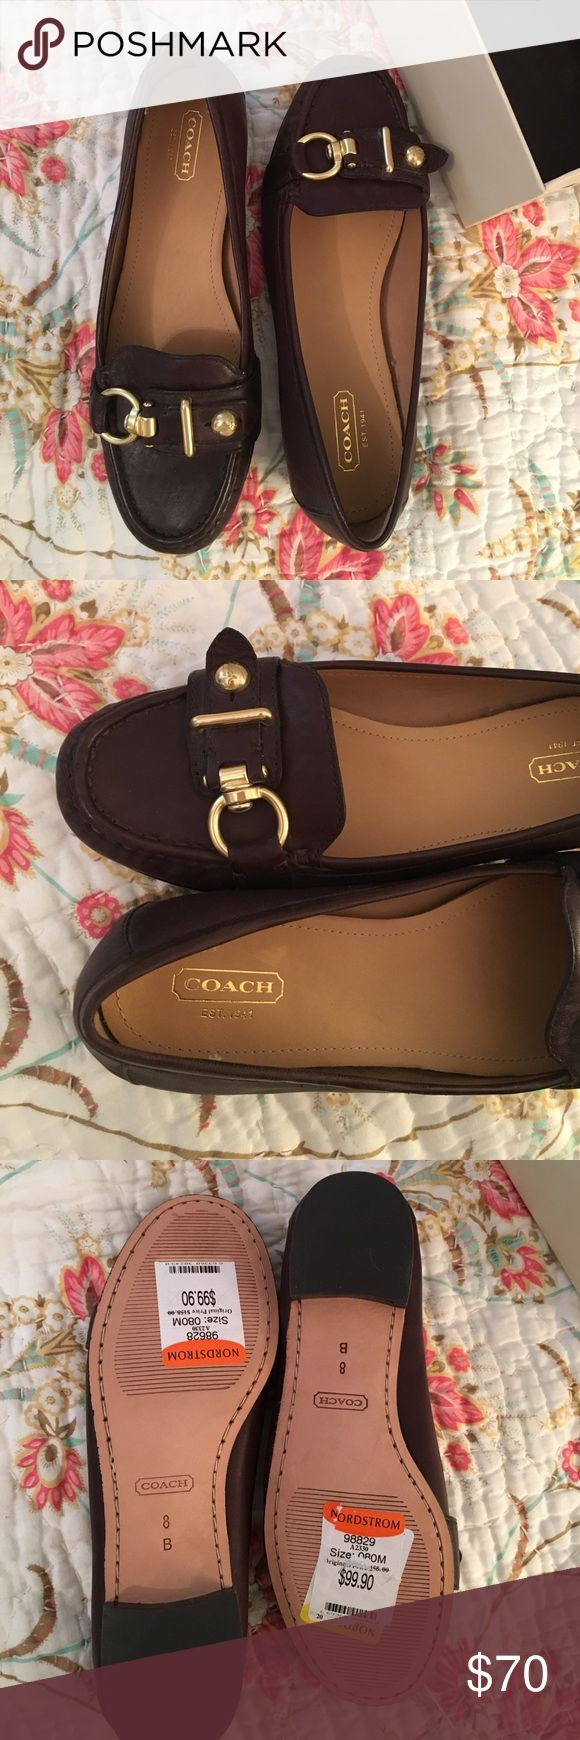 NEW NEVER WORN COACH FLATS NEW NEVER WORN COACH FLATS! Brand new size 8 Coach shoes. I have the box as well. Chocolate brown. Uber comfy. Coach Shoes Flats & Loafers